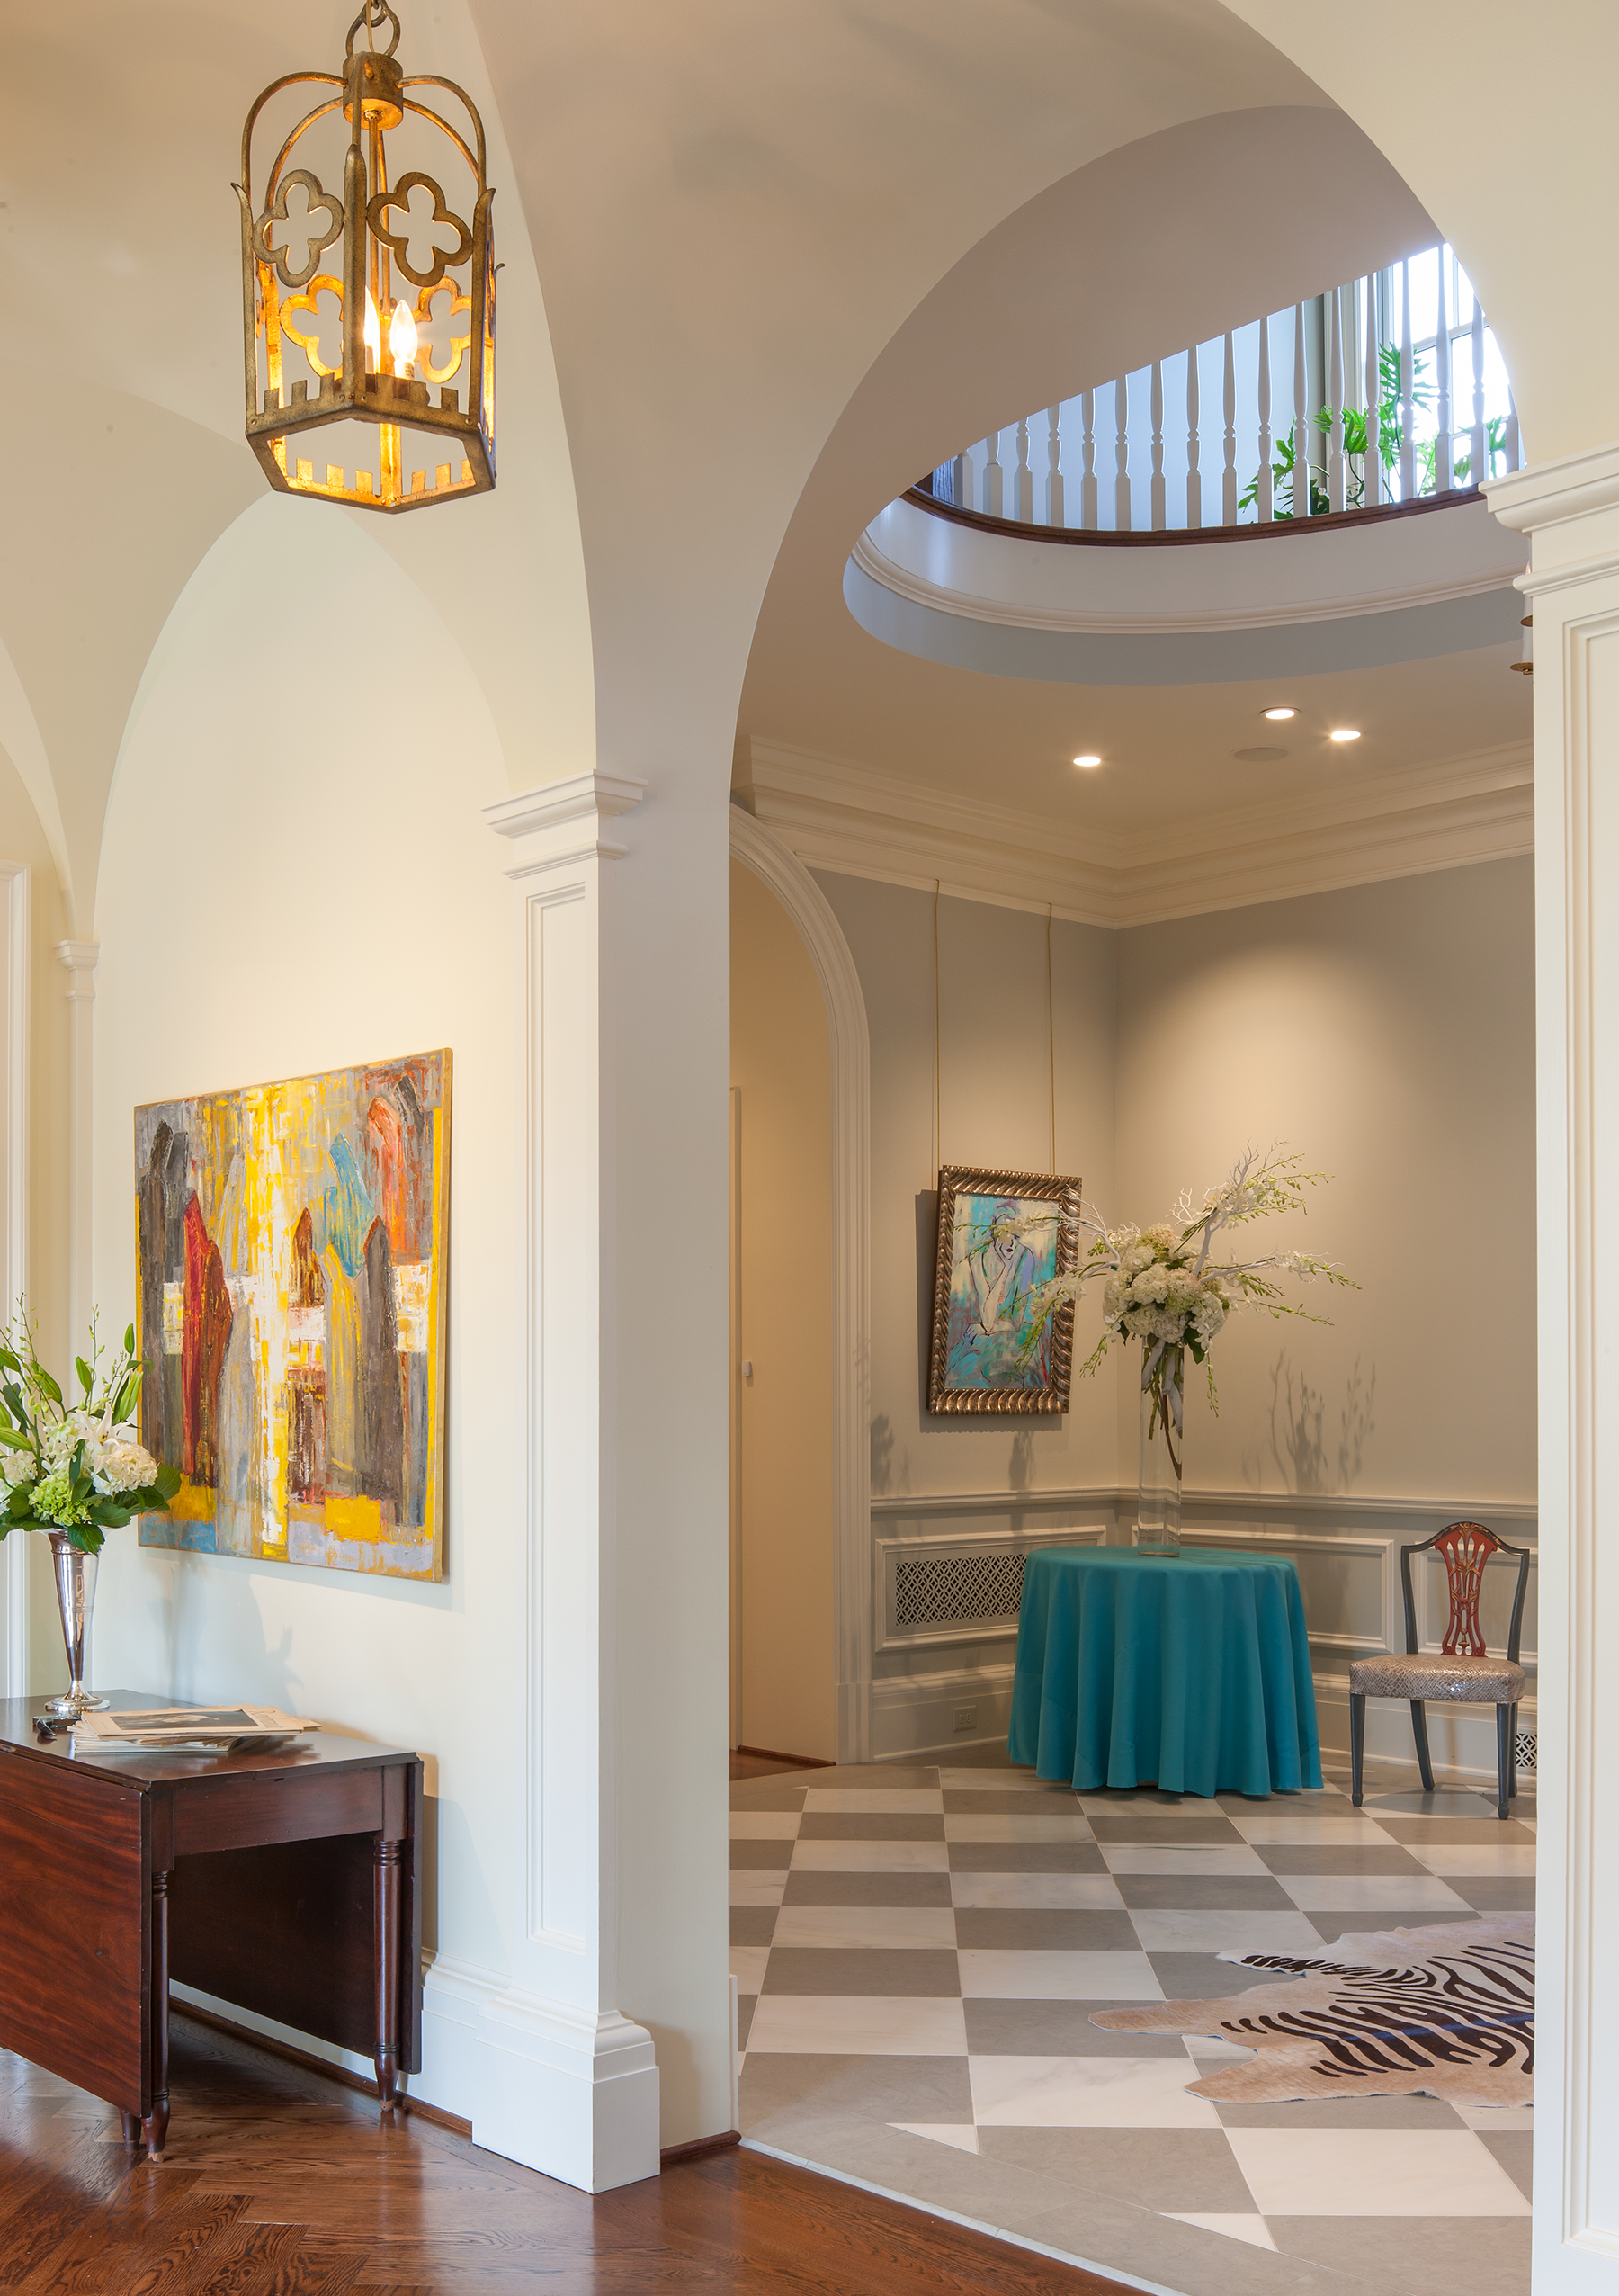 Foyer Entrance - Johnson House Art Collection, William T. Baker